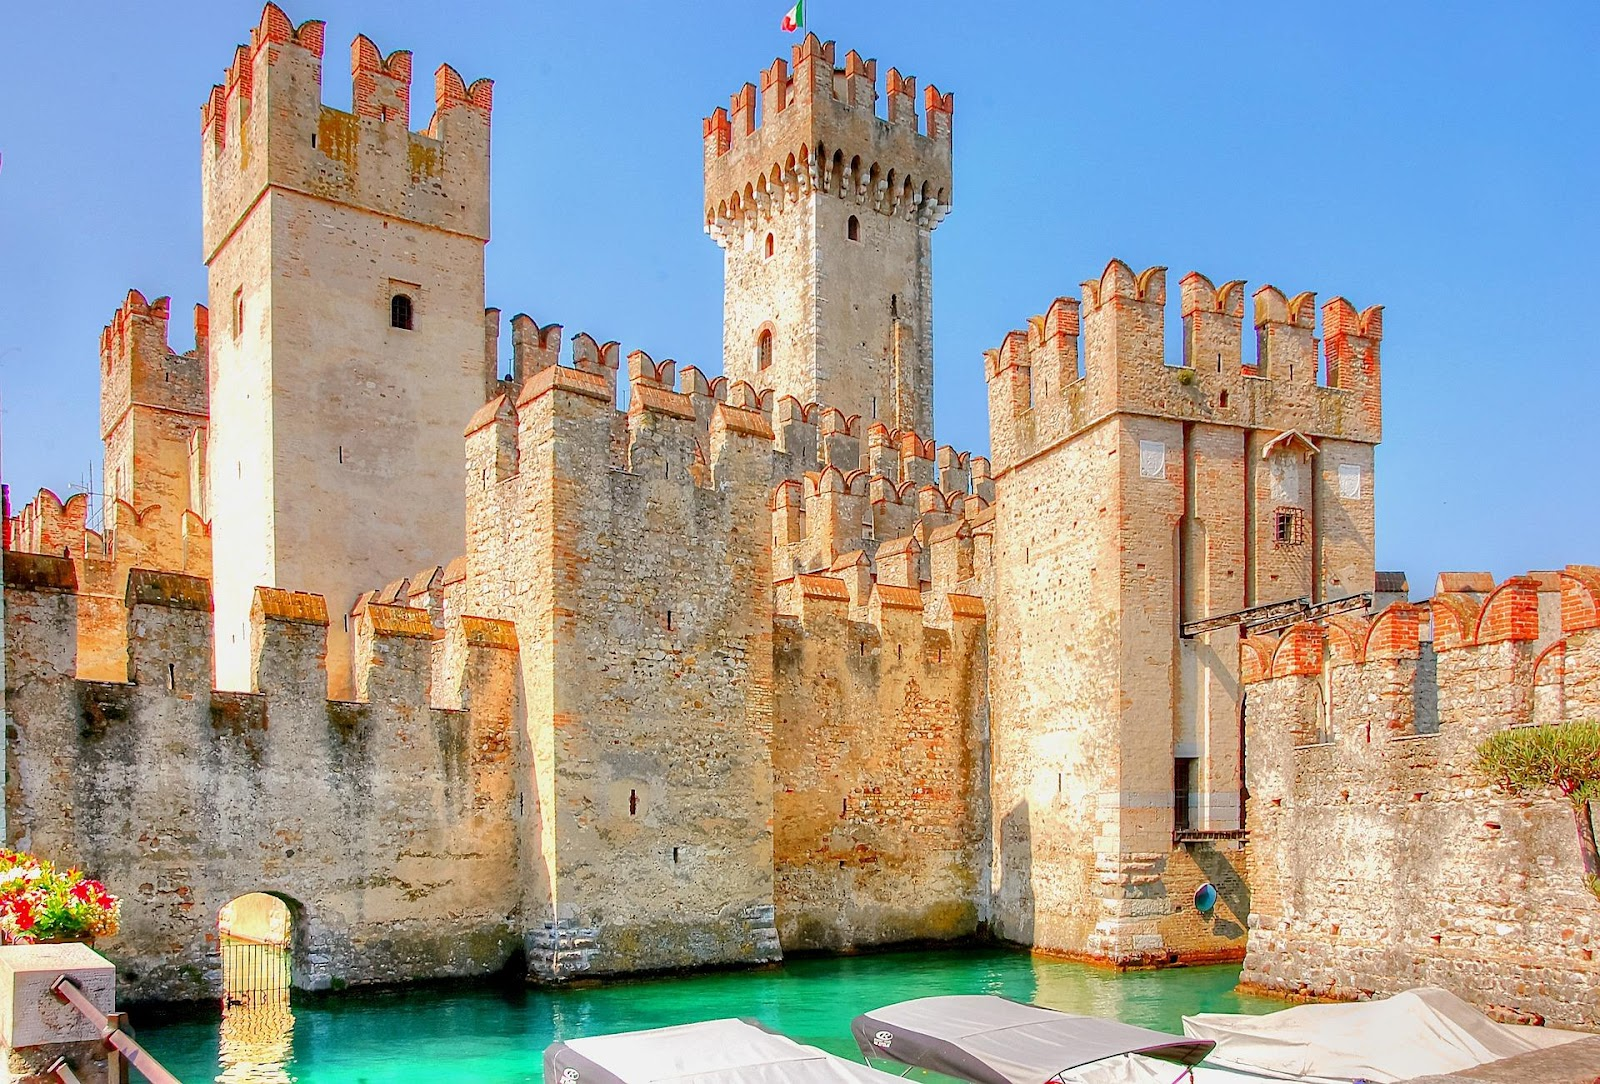 sirmione scalgiero whitewashed bright medieval castle fortress with blue moat italy clear day